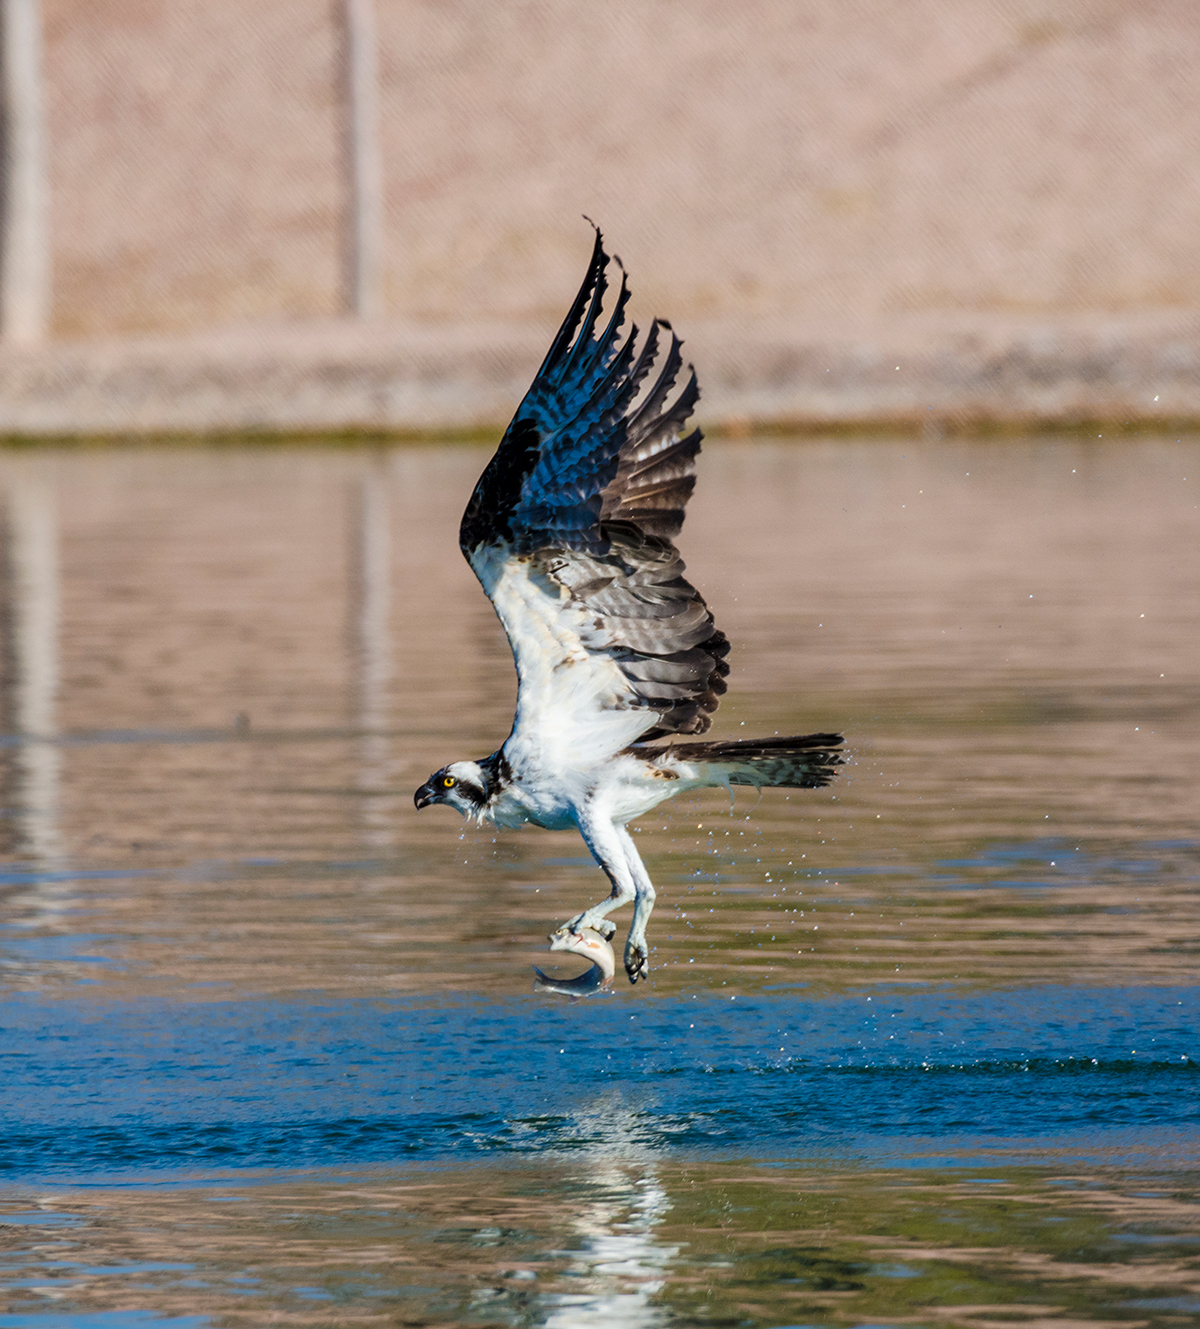 Osprey catching a fish, Henderson, NV